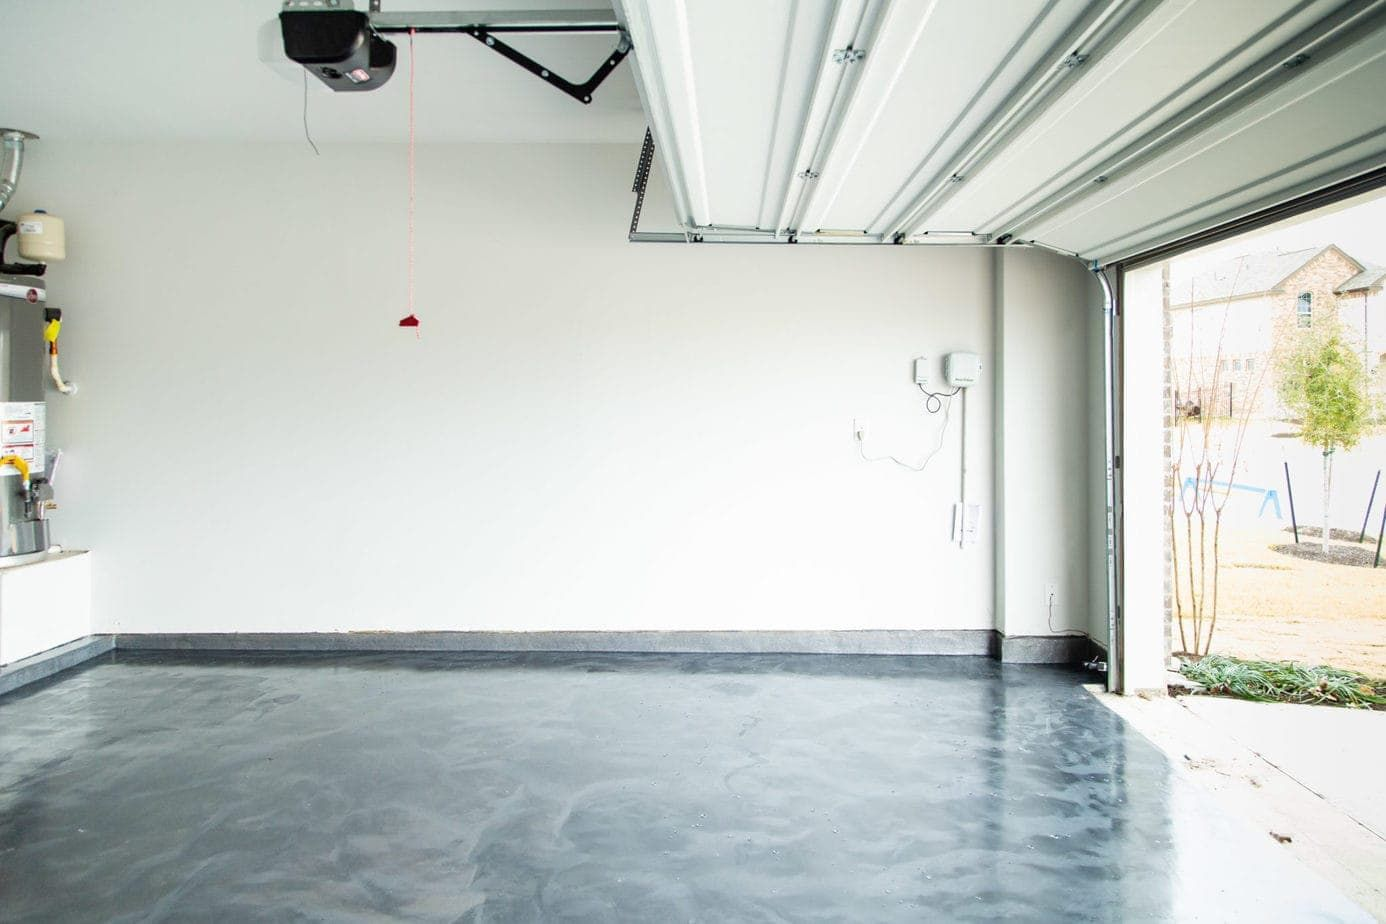 How to apply a DIY epoxy floor coating in your garage. #diy #diyproject #garage #epoxyfloor #prideinthemaking #rustoleum